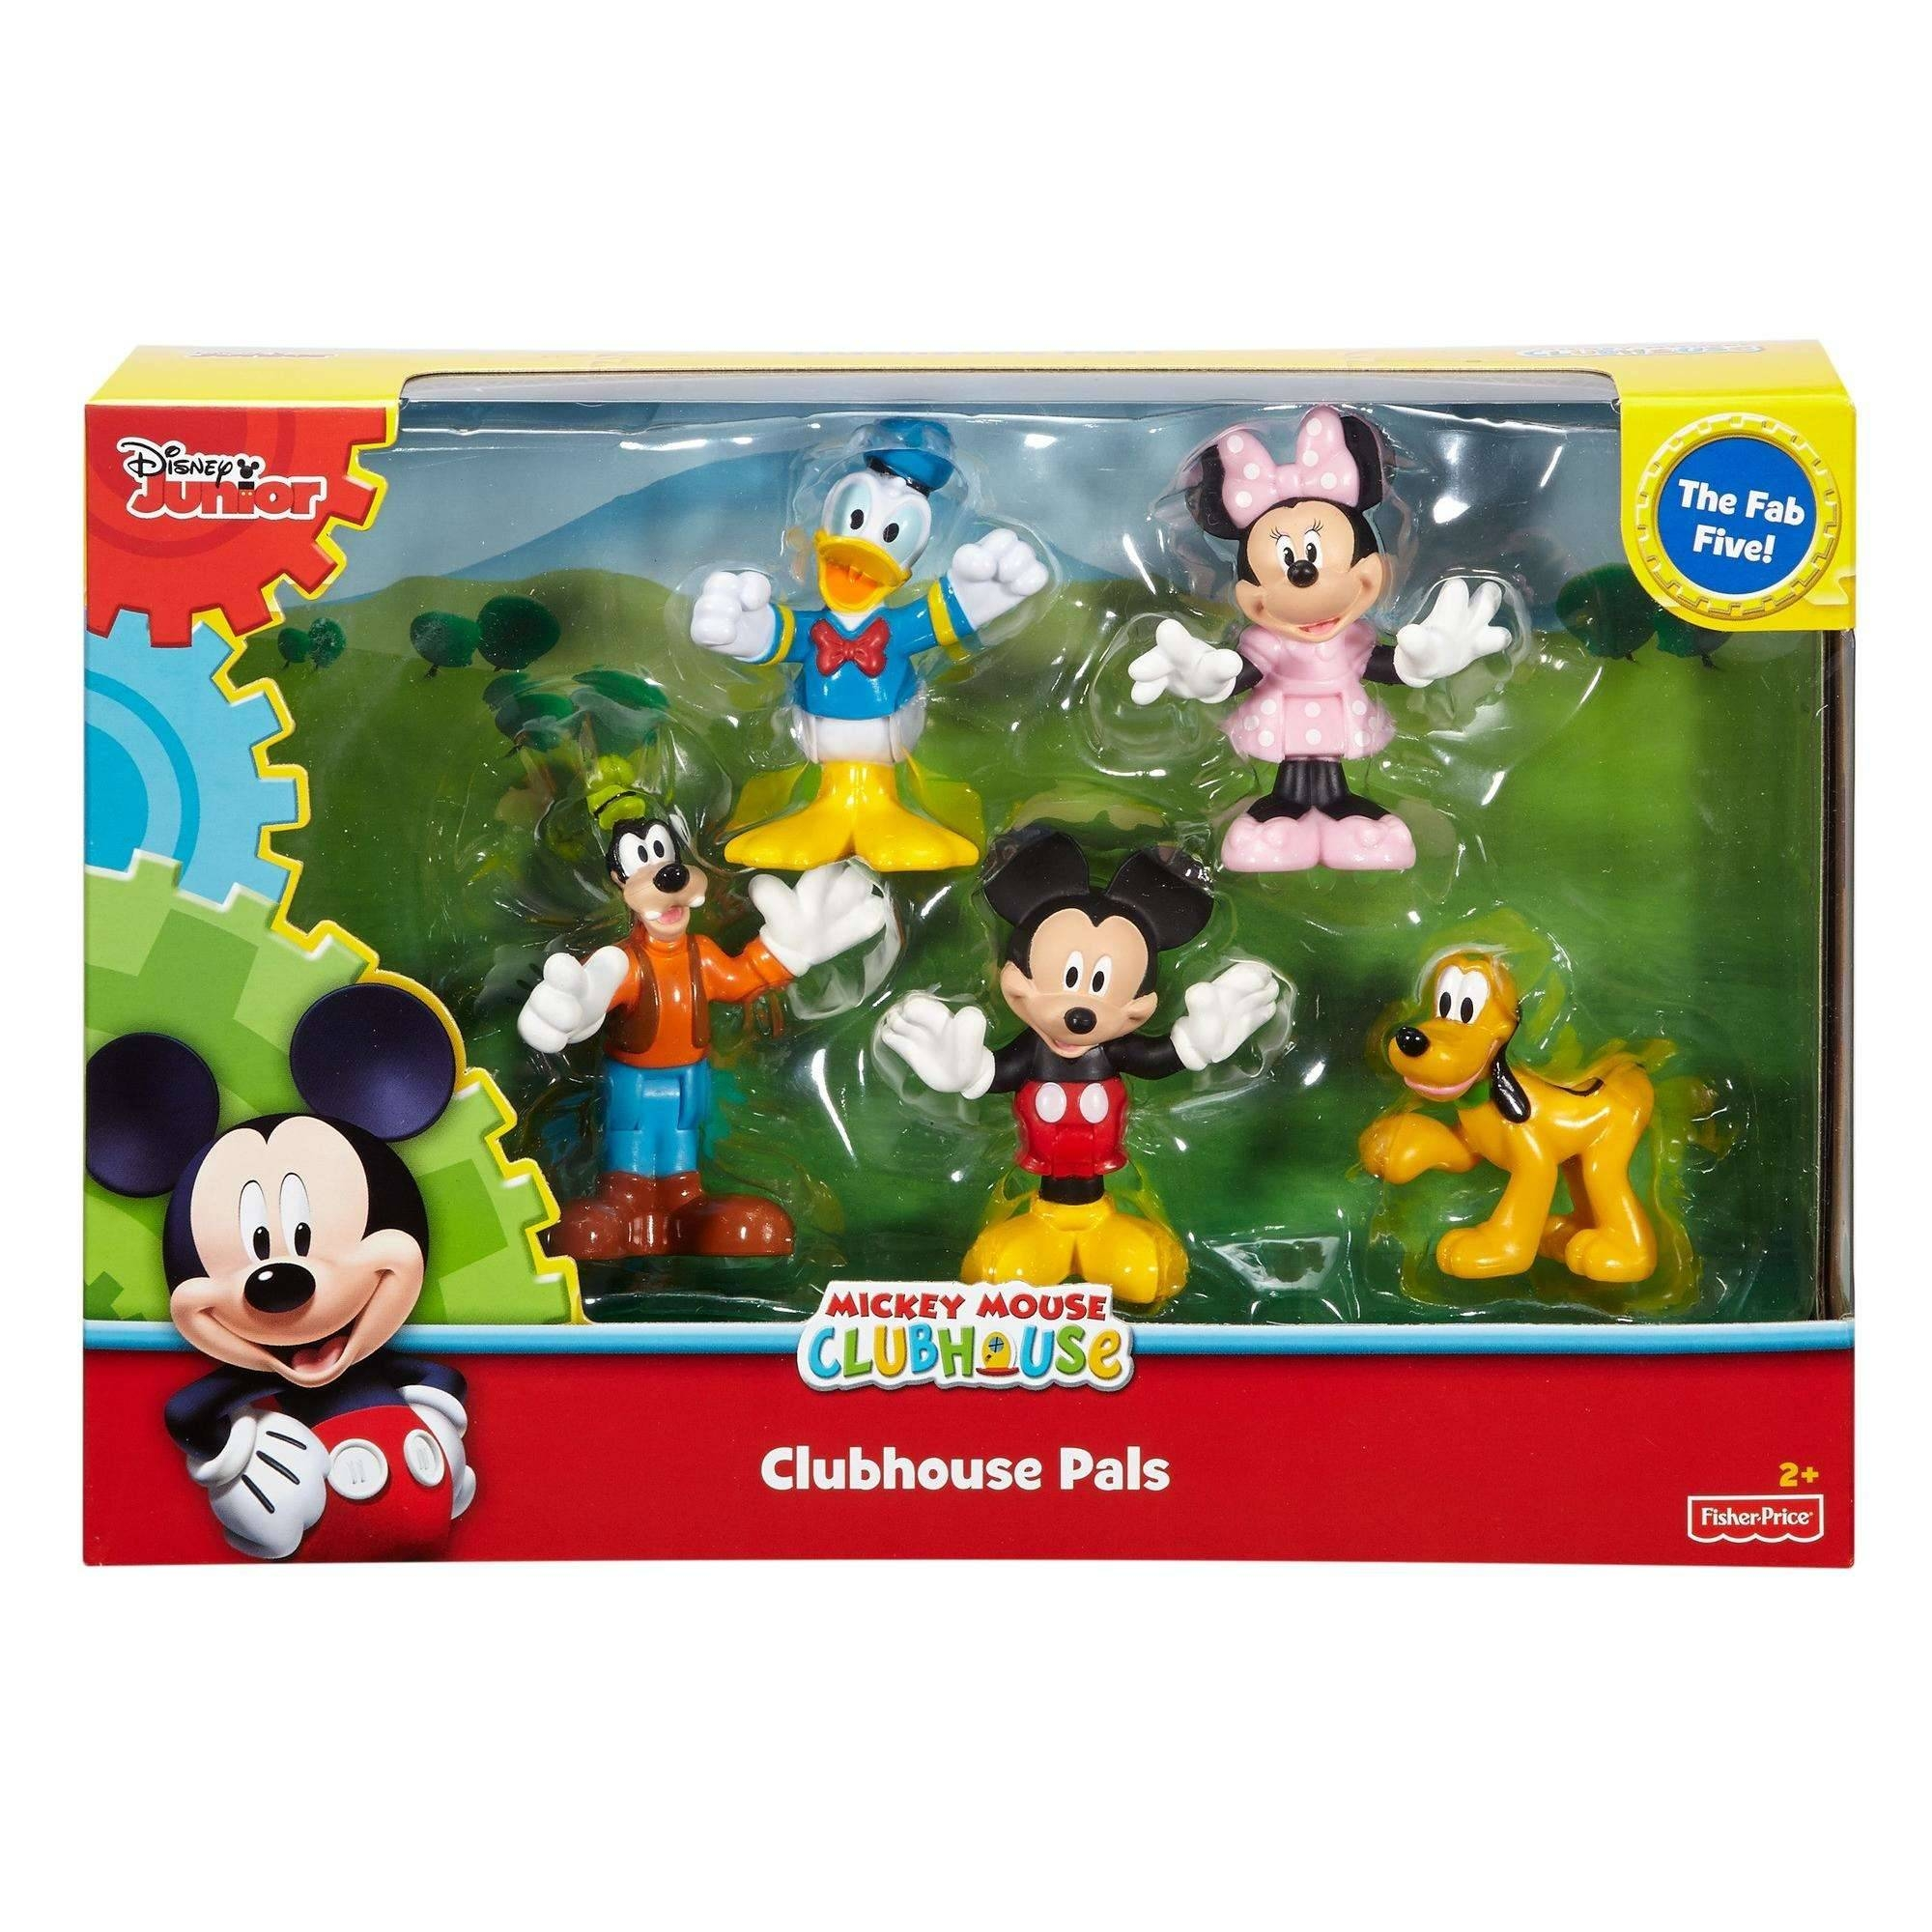 Disney Mickey Mouse Clubhouse Pals – Walmart Pertaining To Recent Mickey Mouse Clubhouse Wall Art (View 10 of 20)